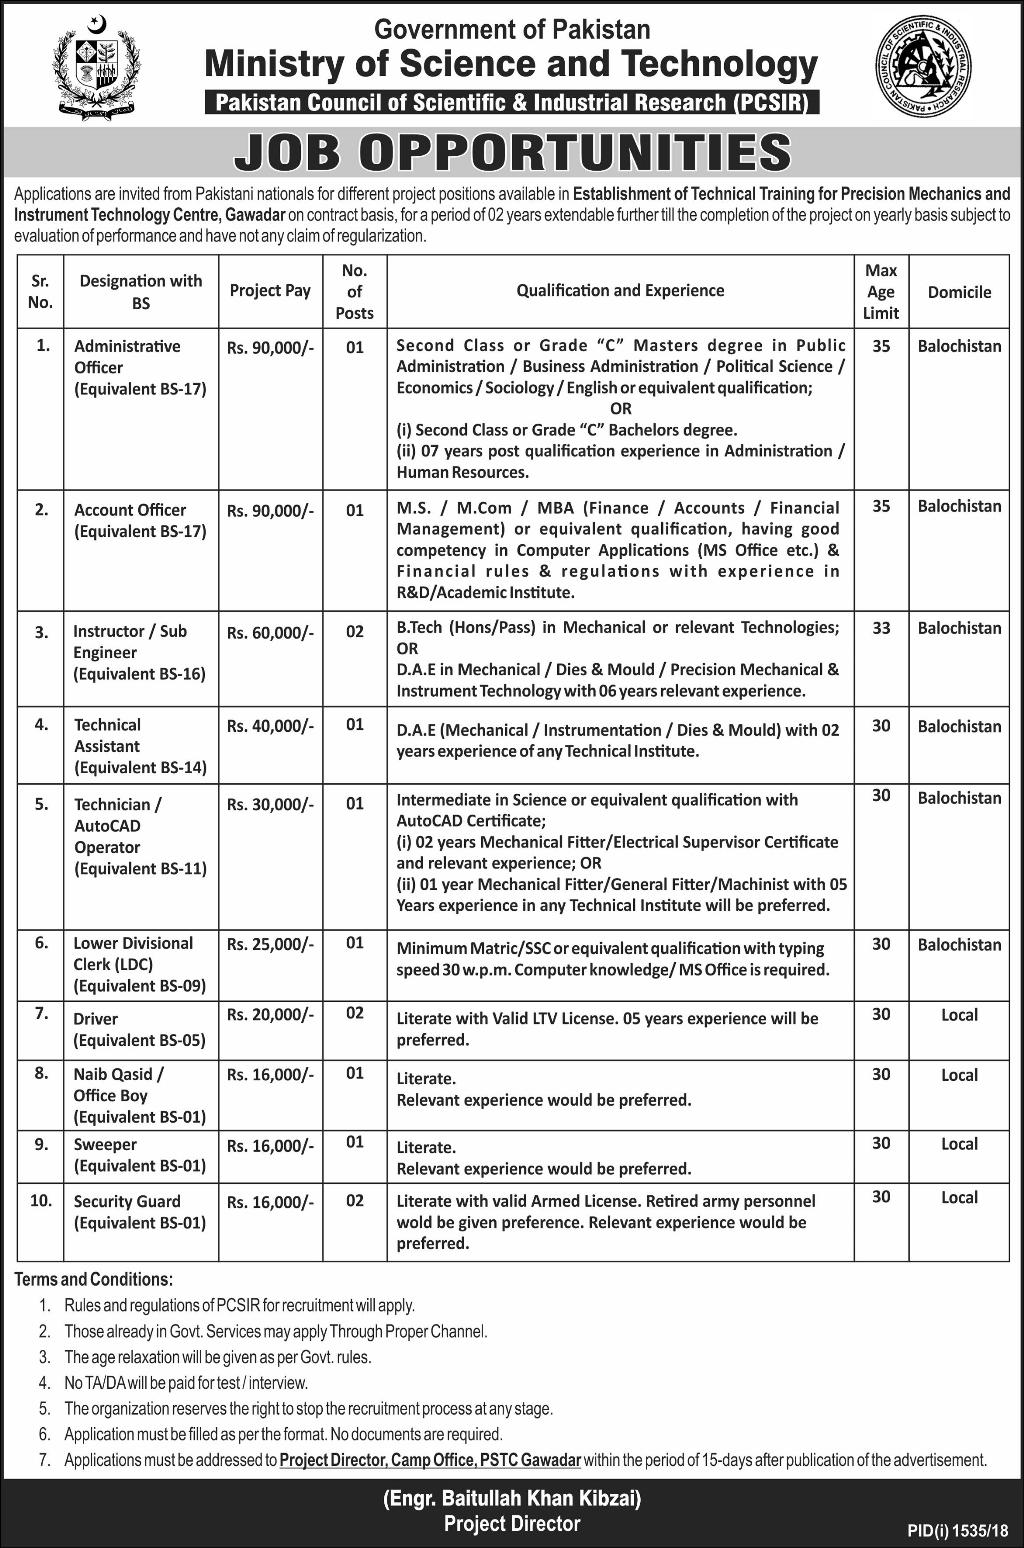 PCSIR Ministry of Science & Technology Jobs 2018